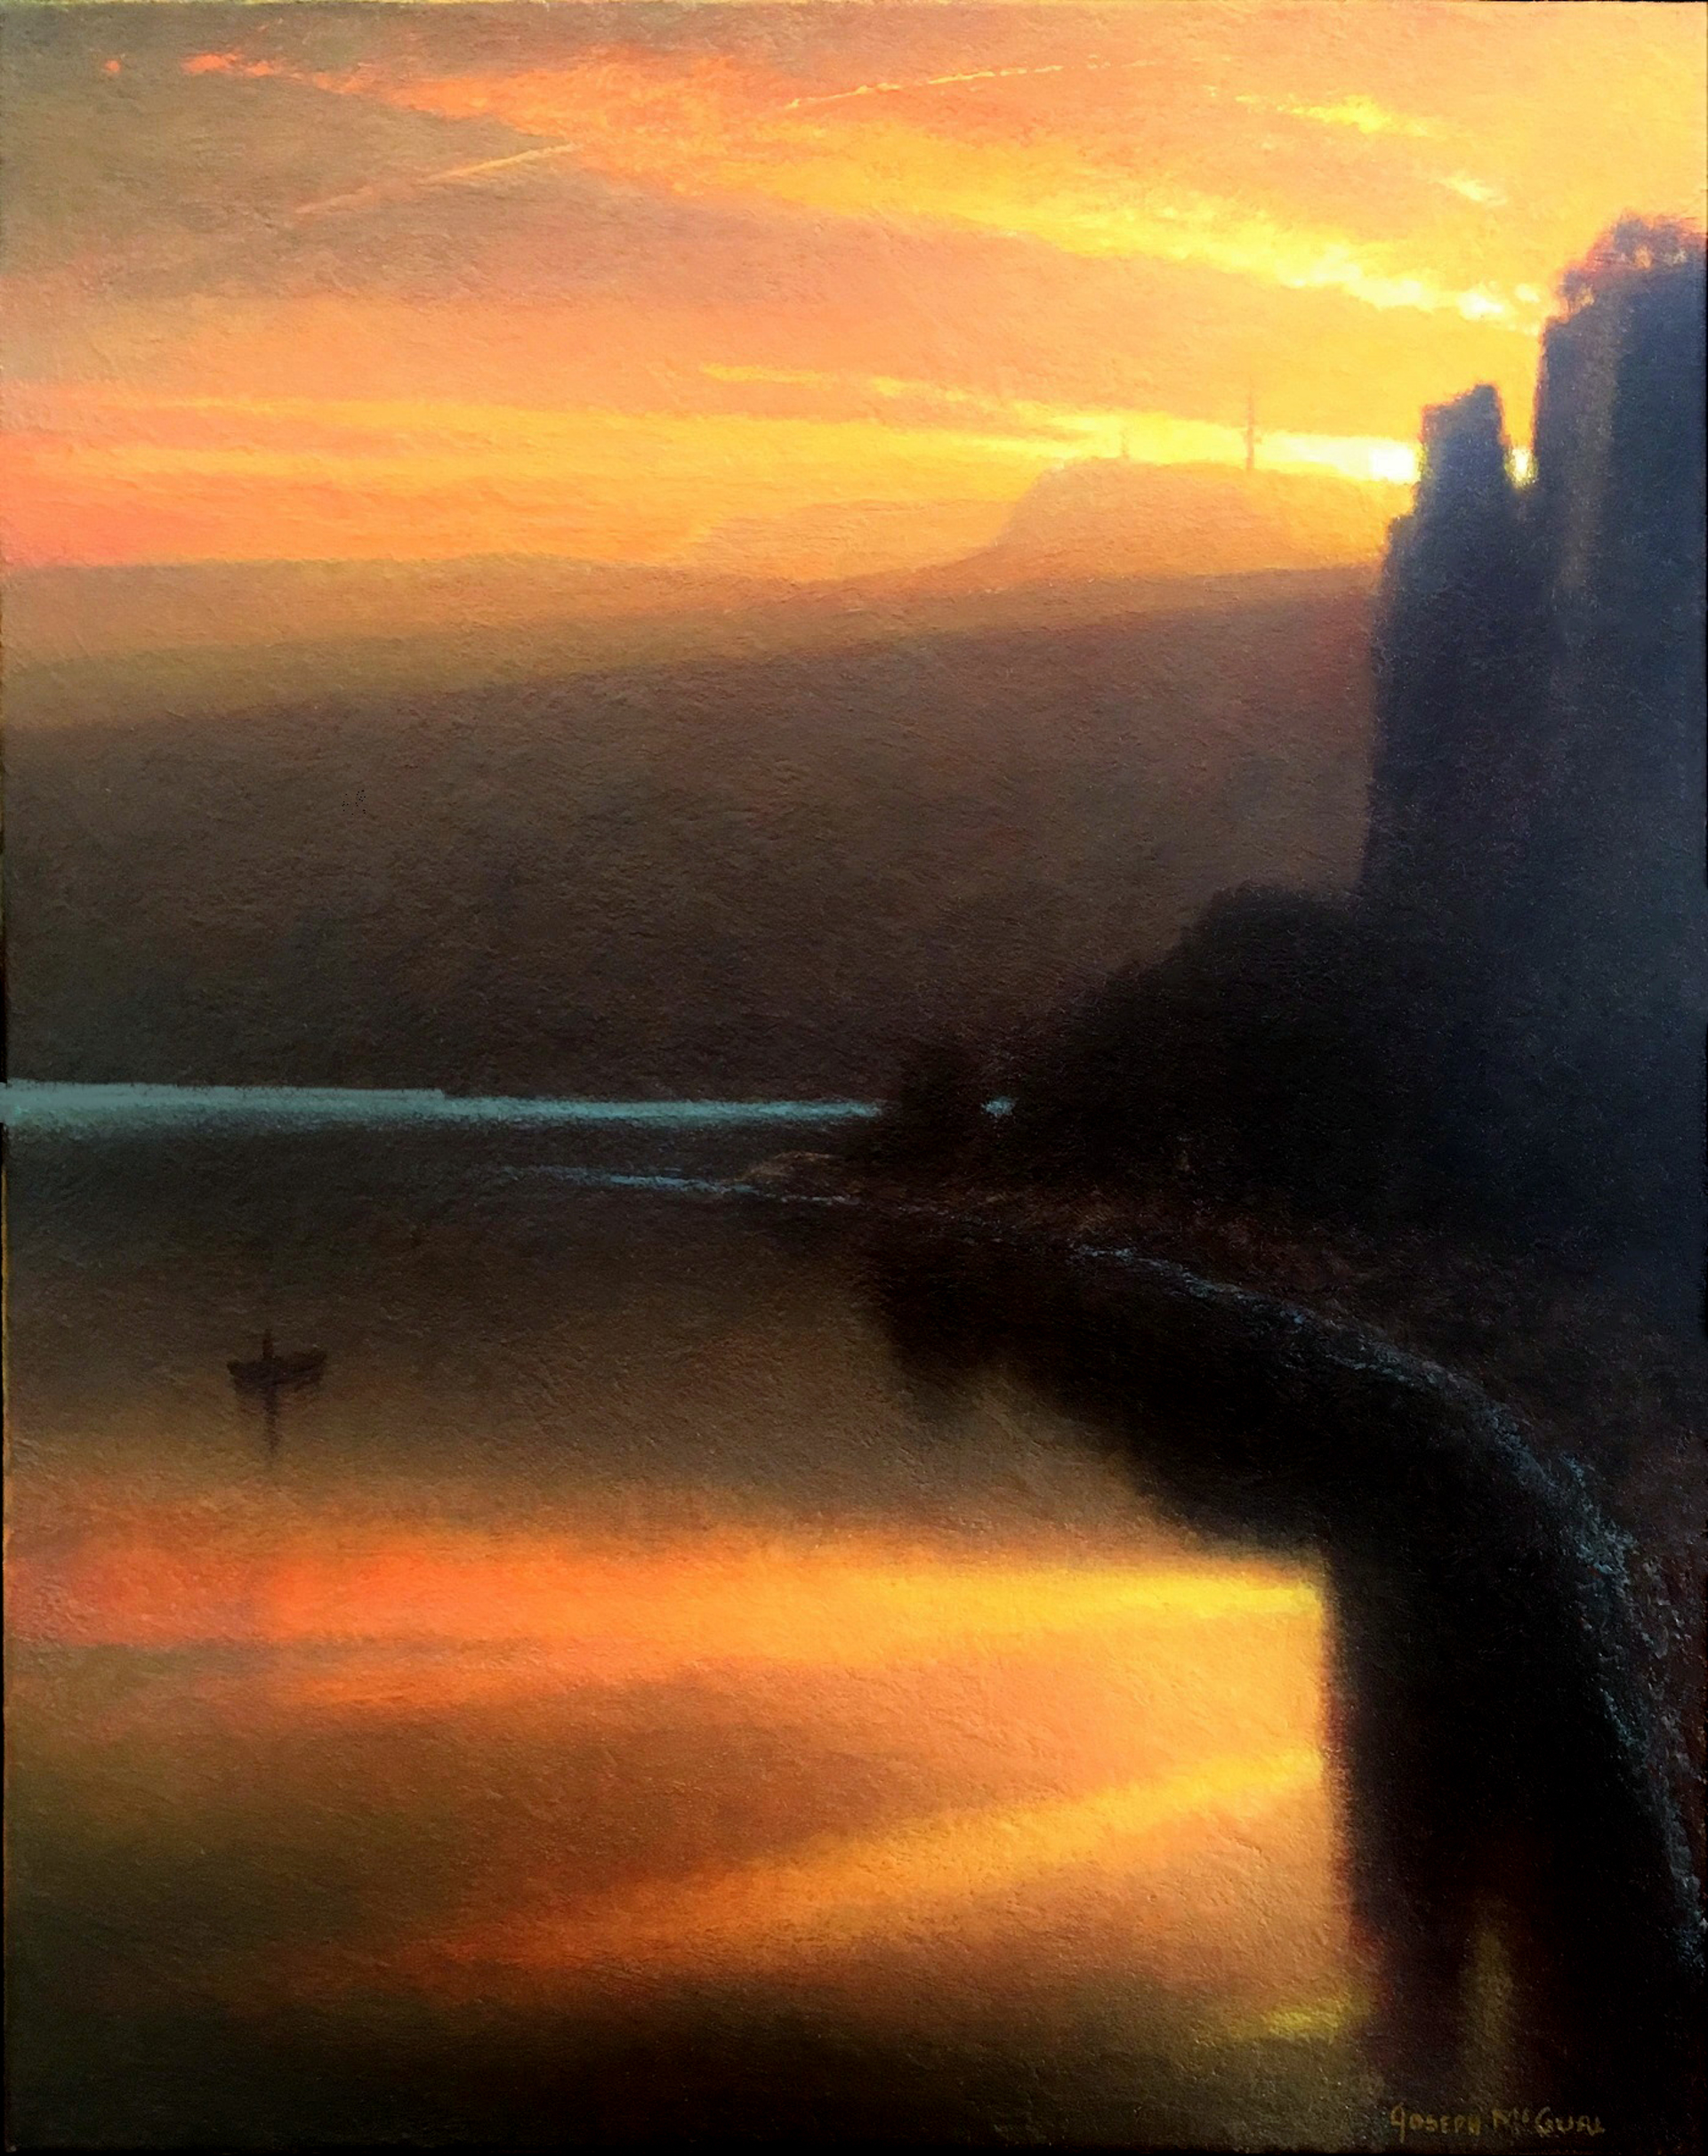 Prism, River and Sky by Joseph McGurl